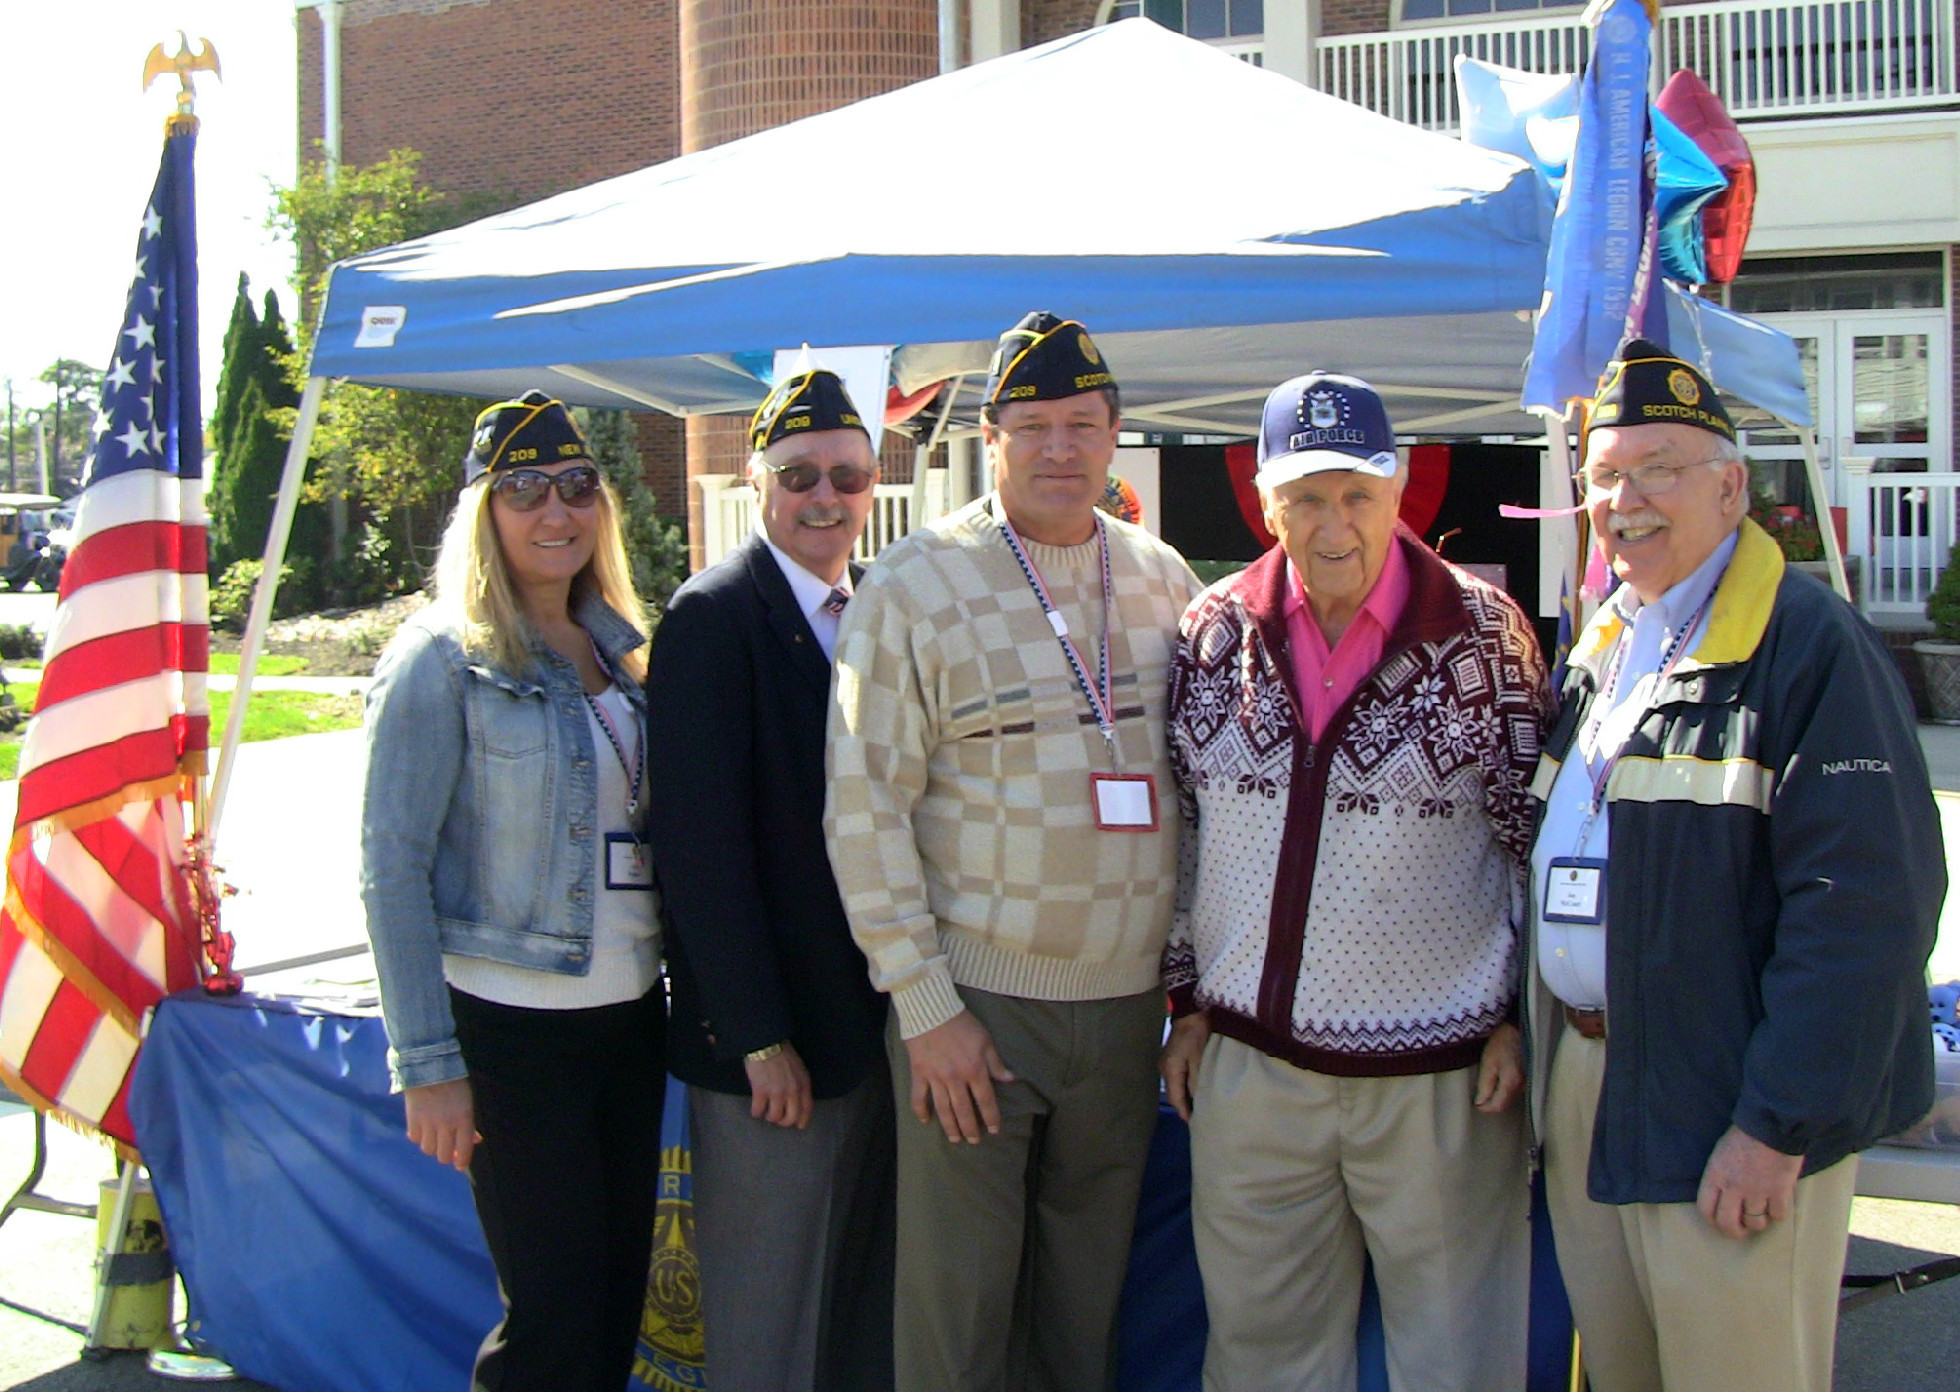 5ab4141c0b068a021eaf_American_Legion_table.jpg